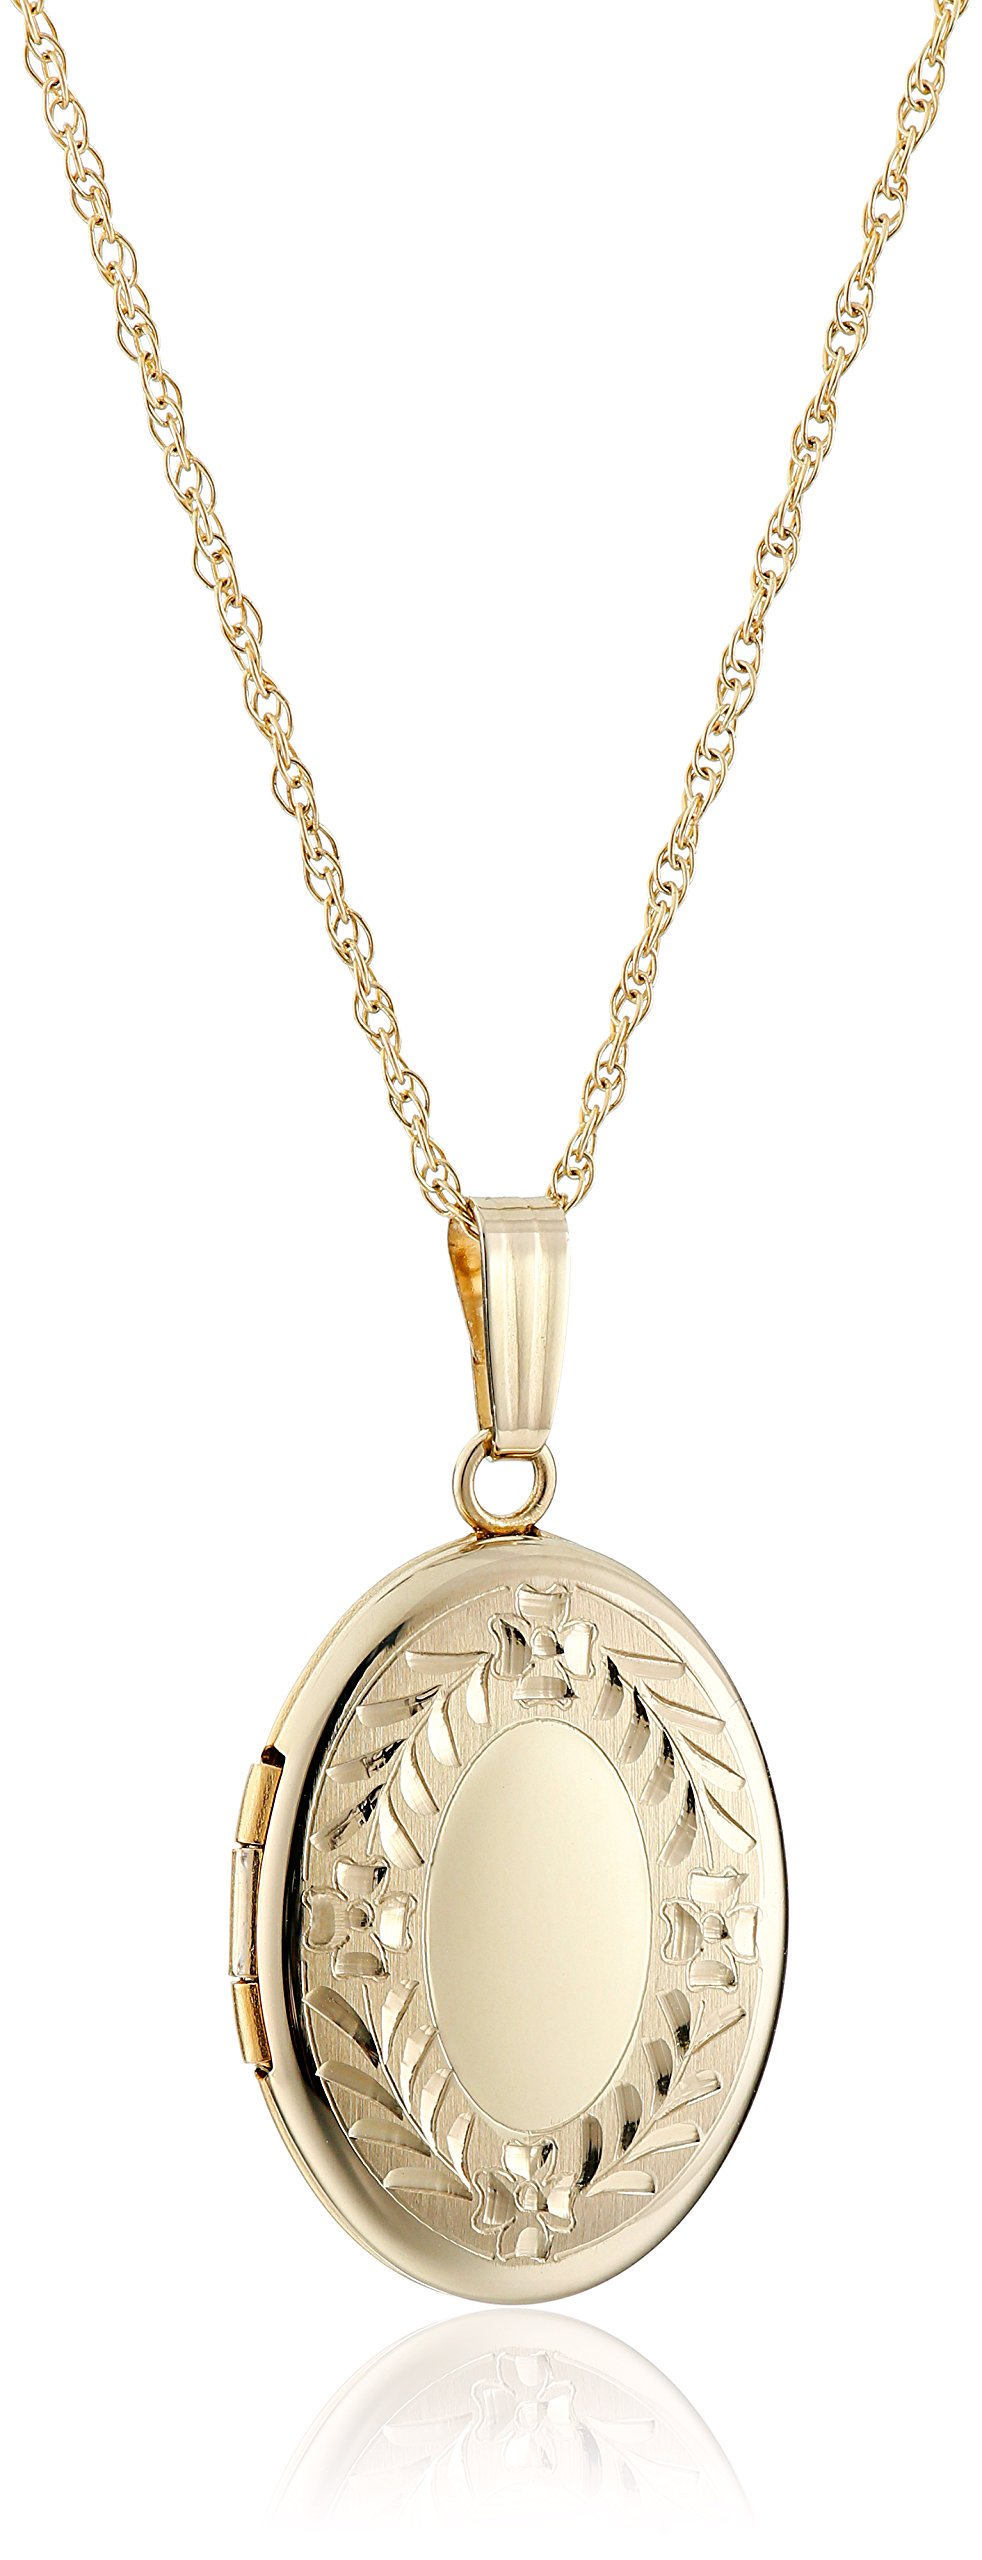 14k Yellow Gold Hand Engraved Oval Locket Necklace, 18''